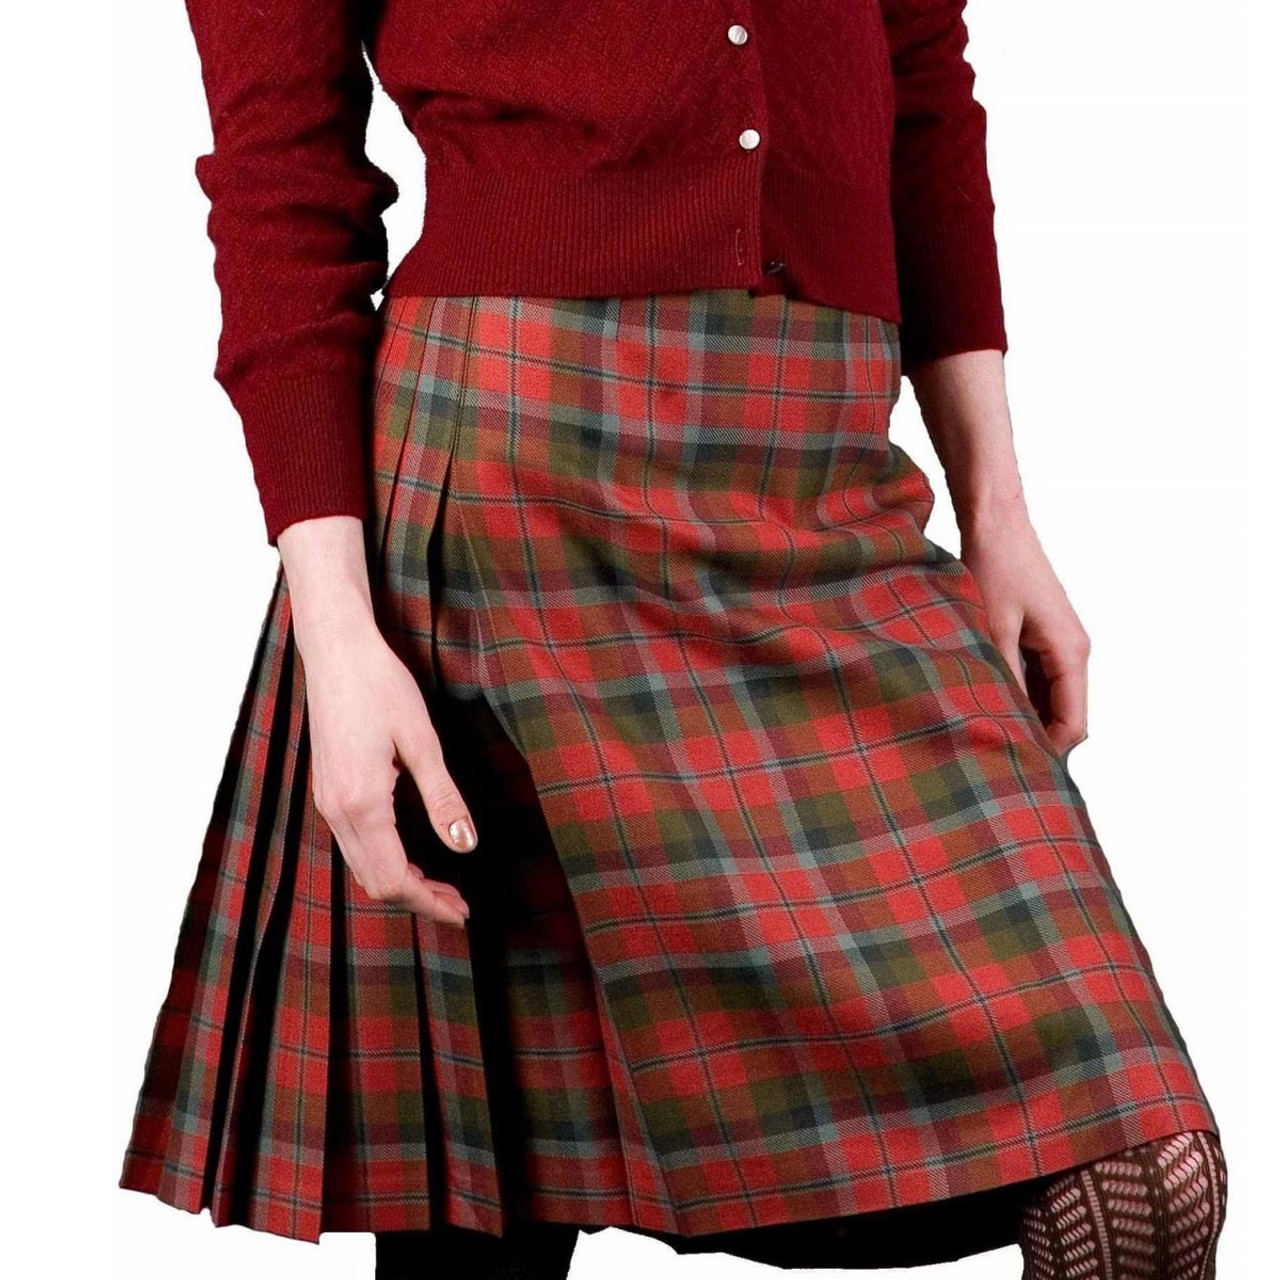 ea8e7564f9bb Clan Tartan Kilted Skirt - Burnett's & Struth Scottish Regalia